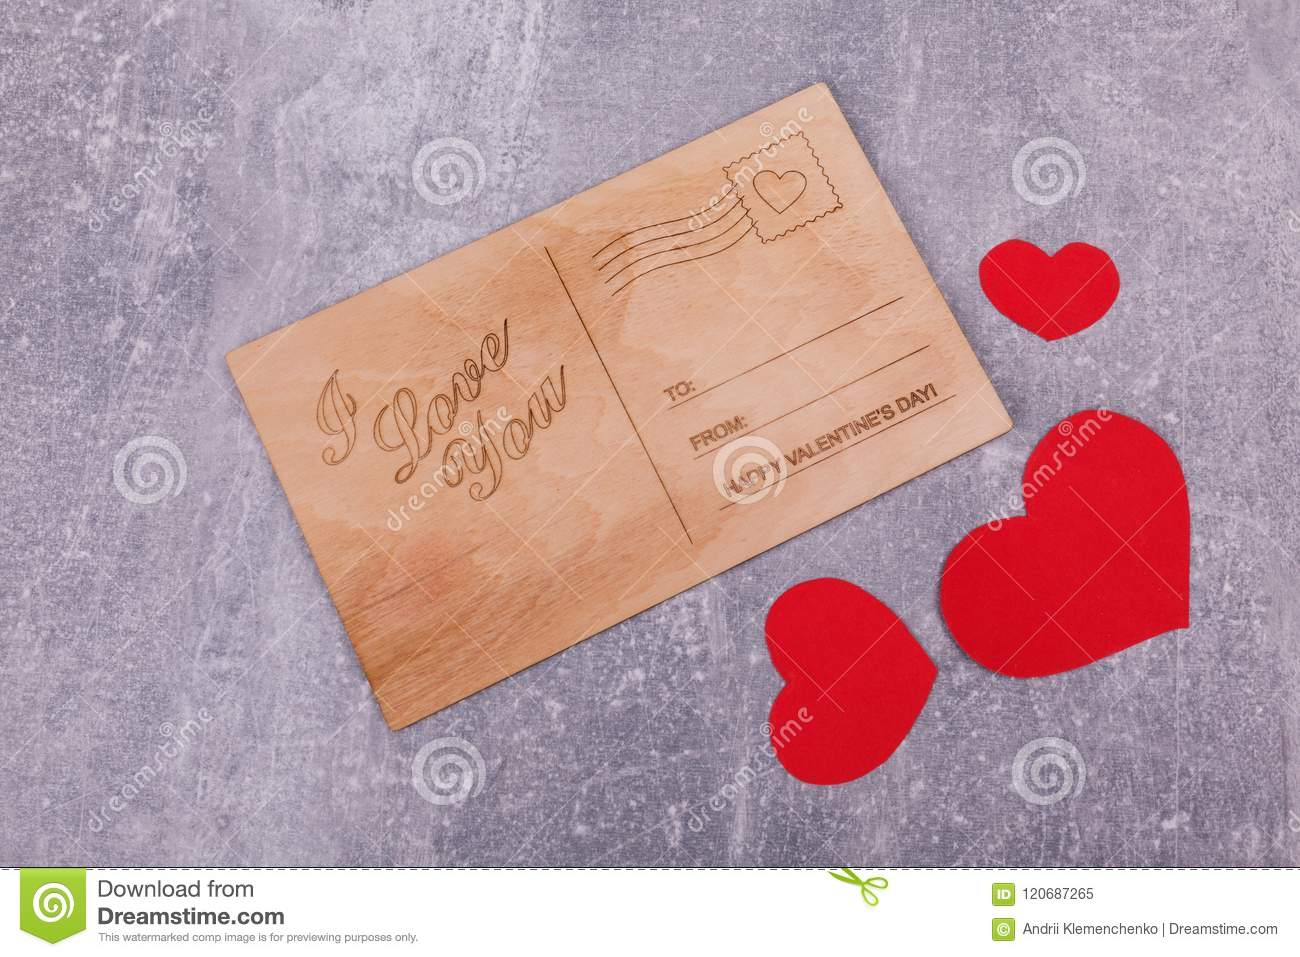 A wooden postcard with red hearts